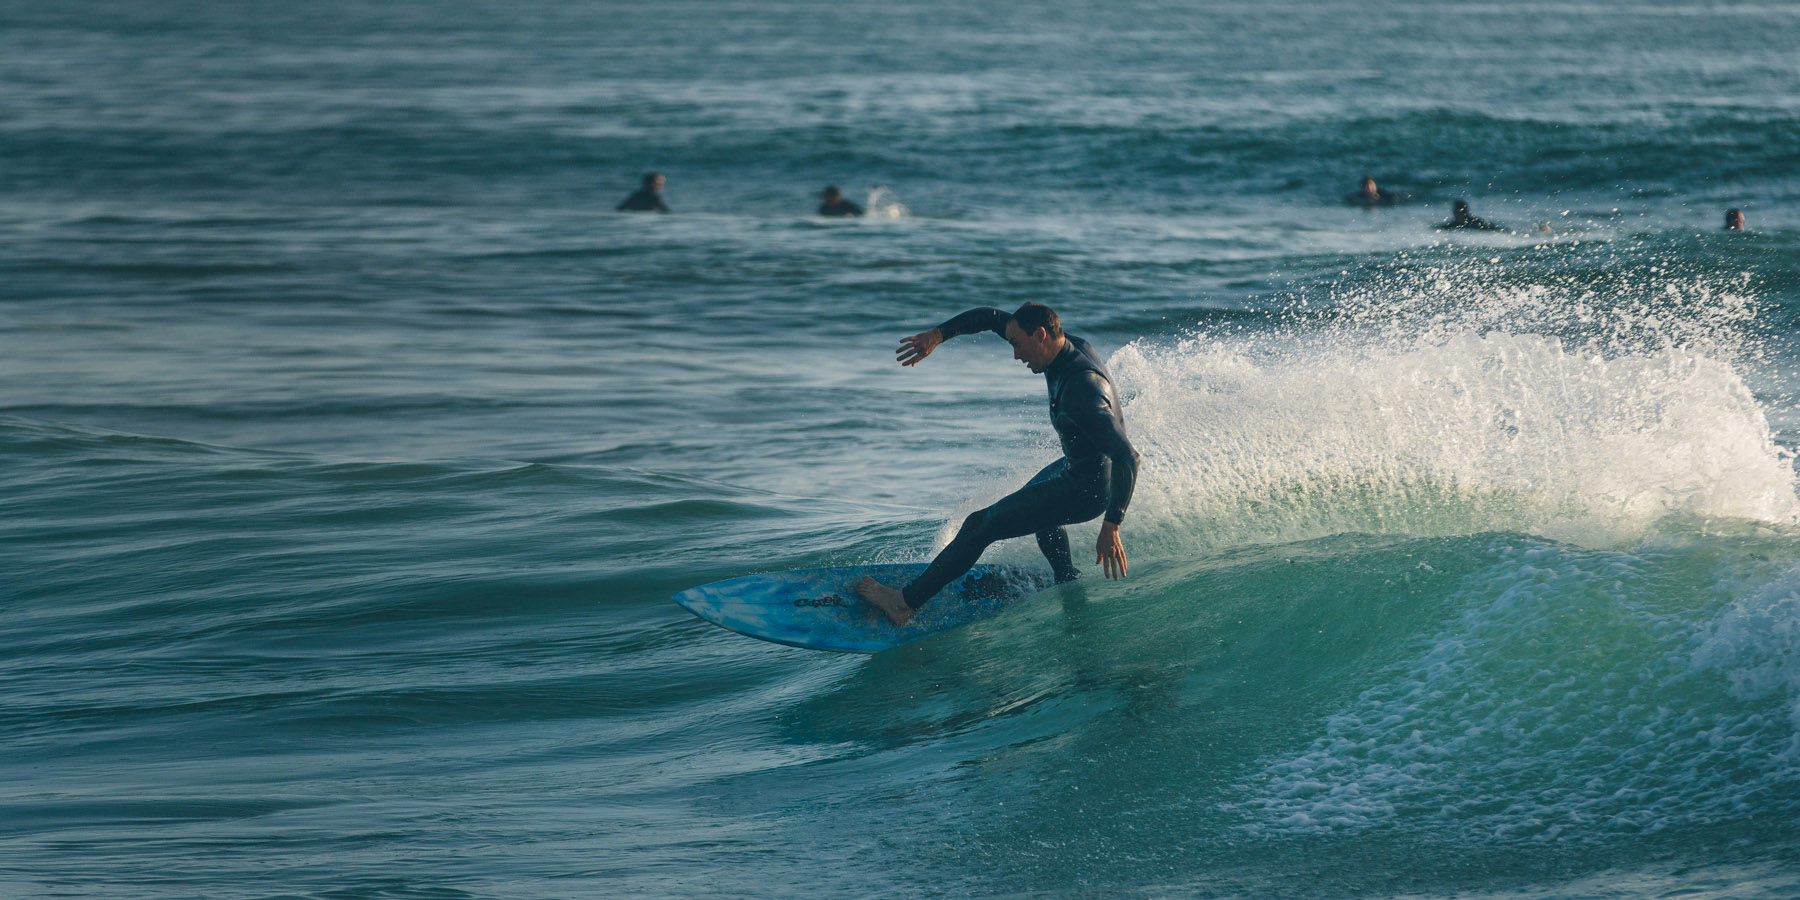 A surfer catches a wave.